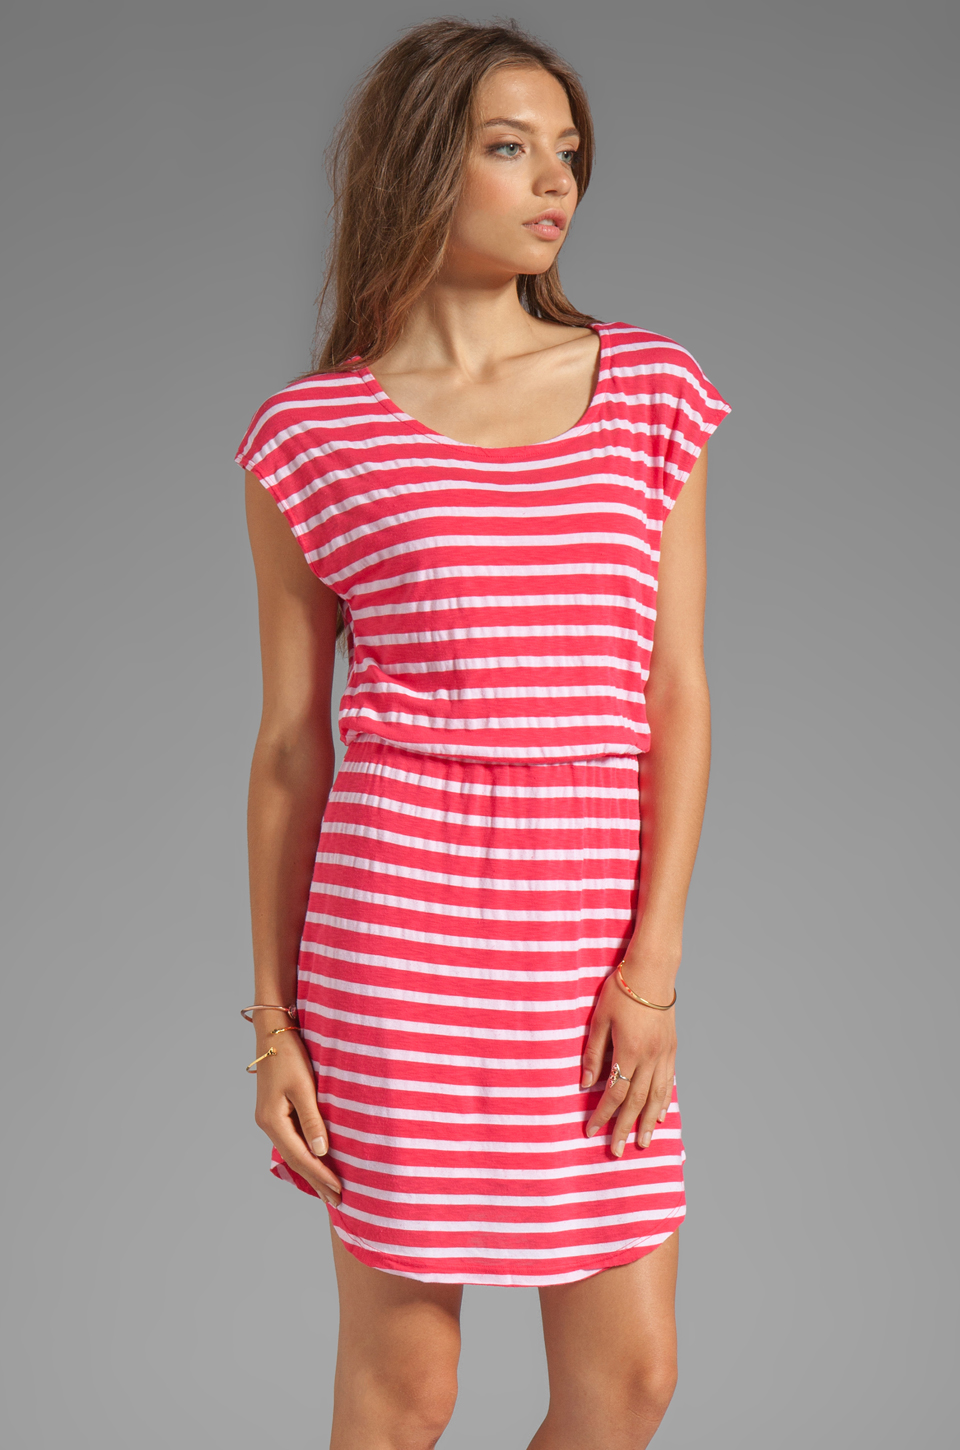 Splendid Short Sleeve Stripe Dress in Punch